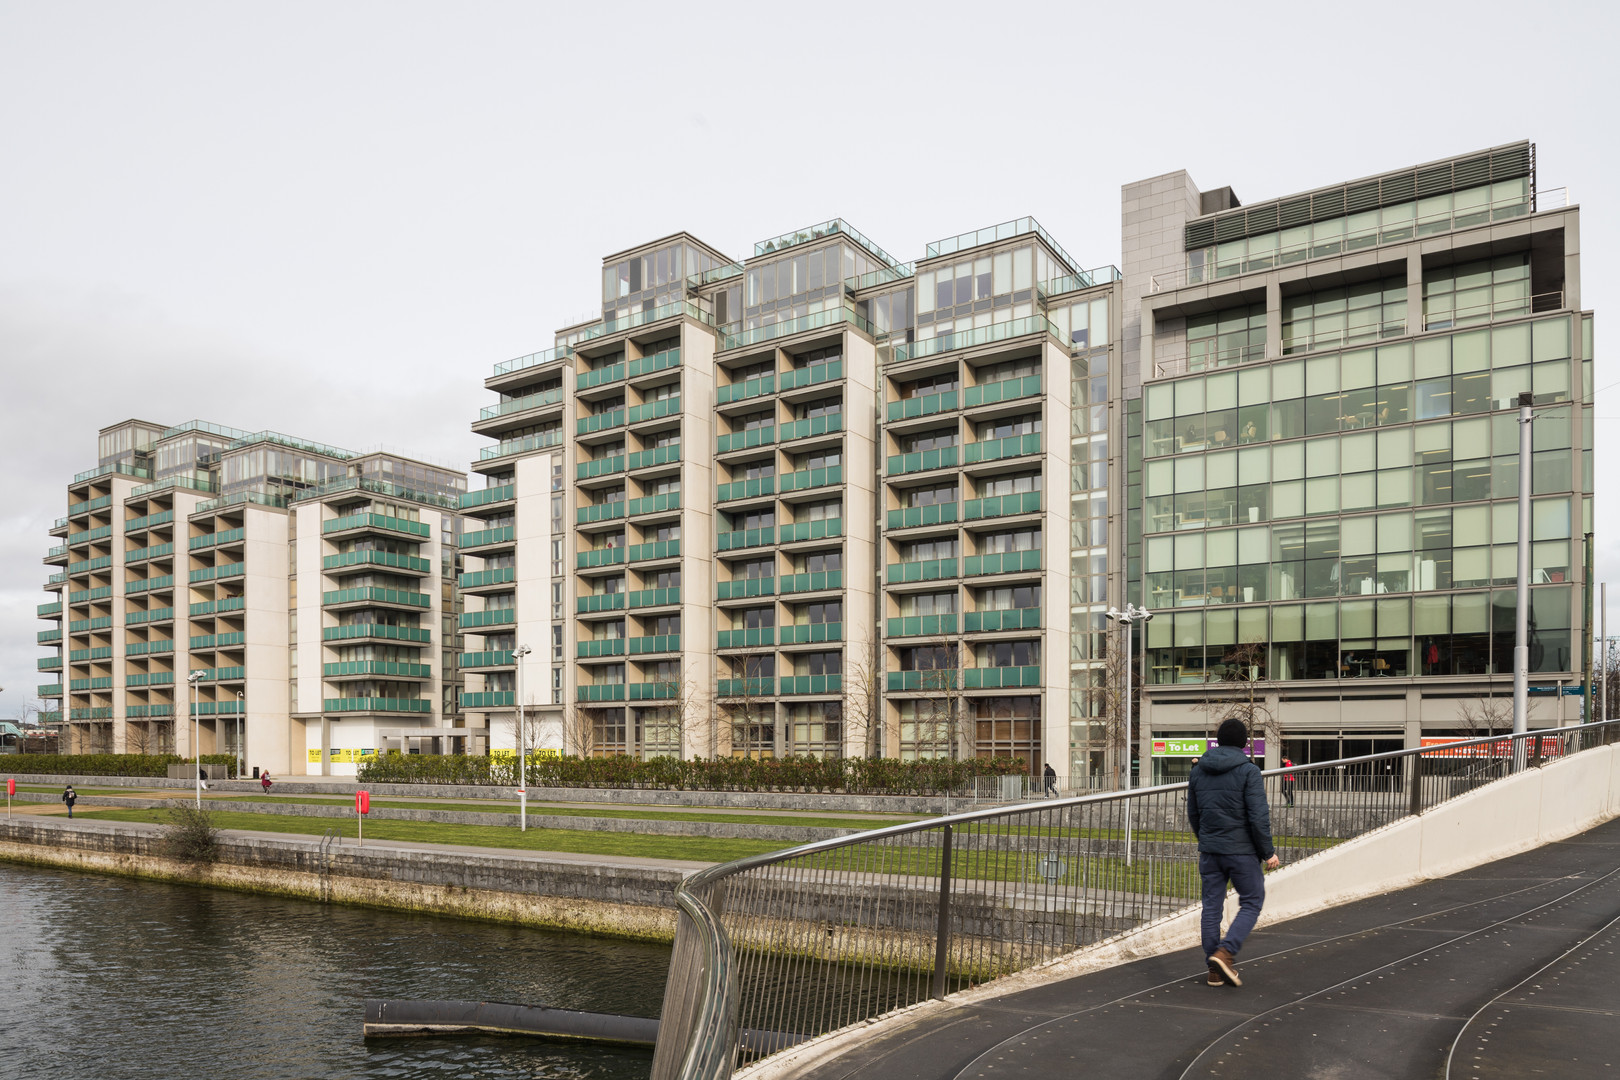 External view of the Spencer Dock Apartments in Dublin from bridge in Linear Park